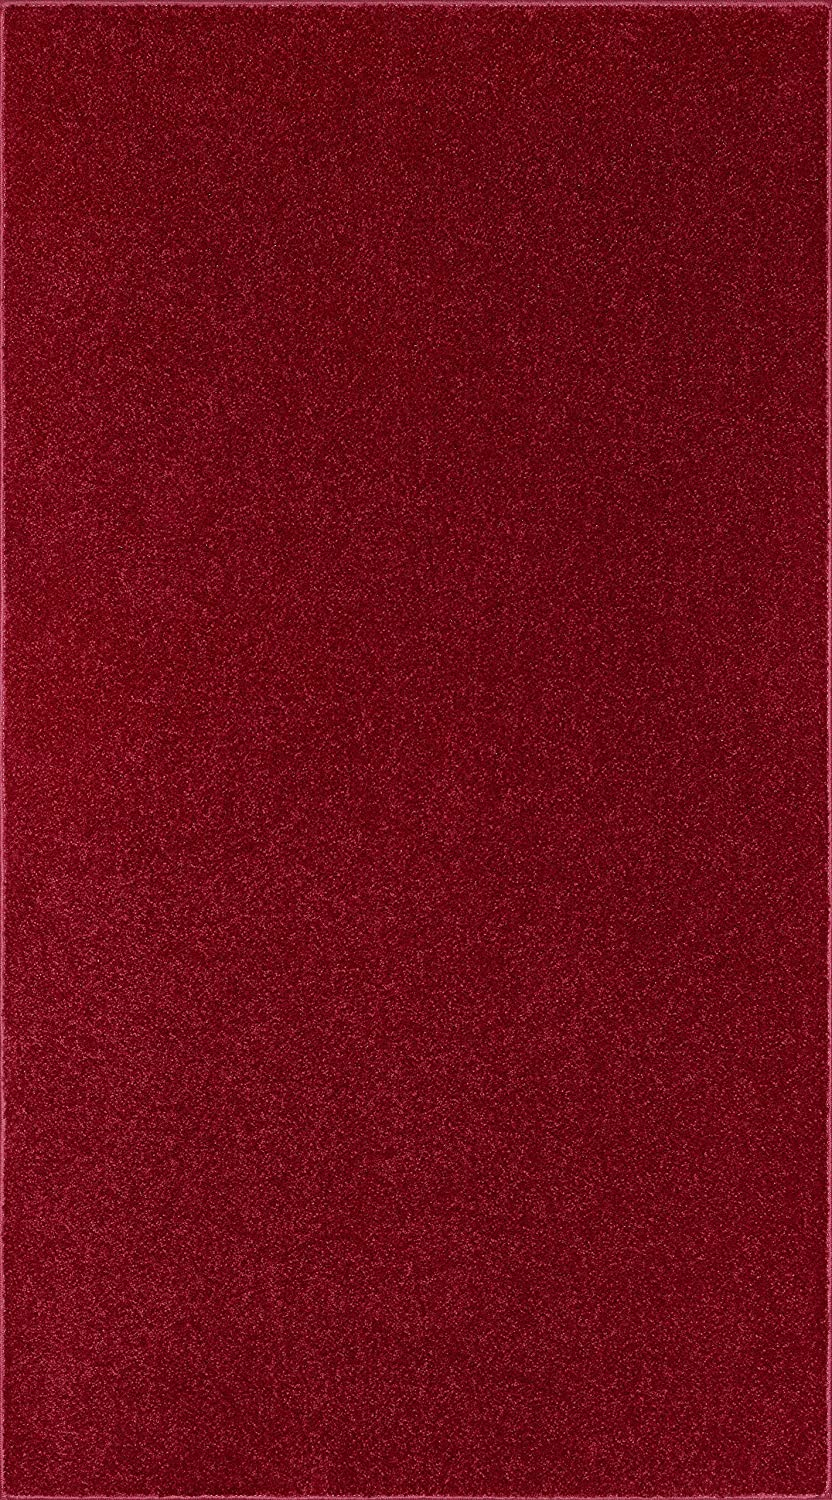 Ambiant Solid Color Oversize Area Rug Burgundy, 9' x 23'